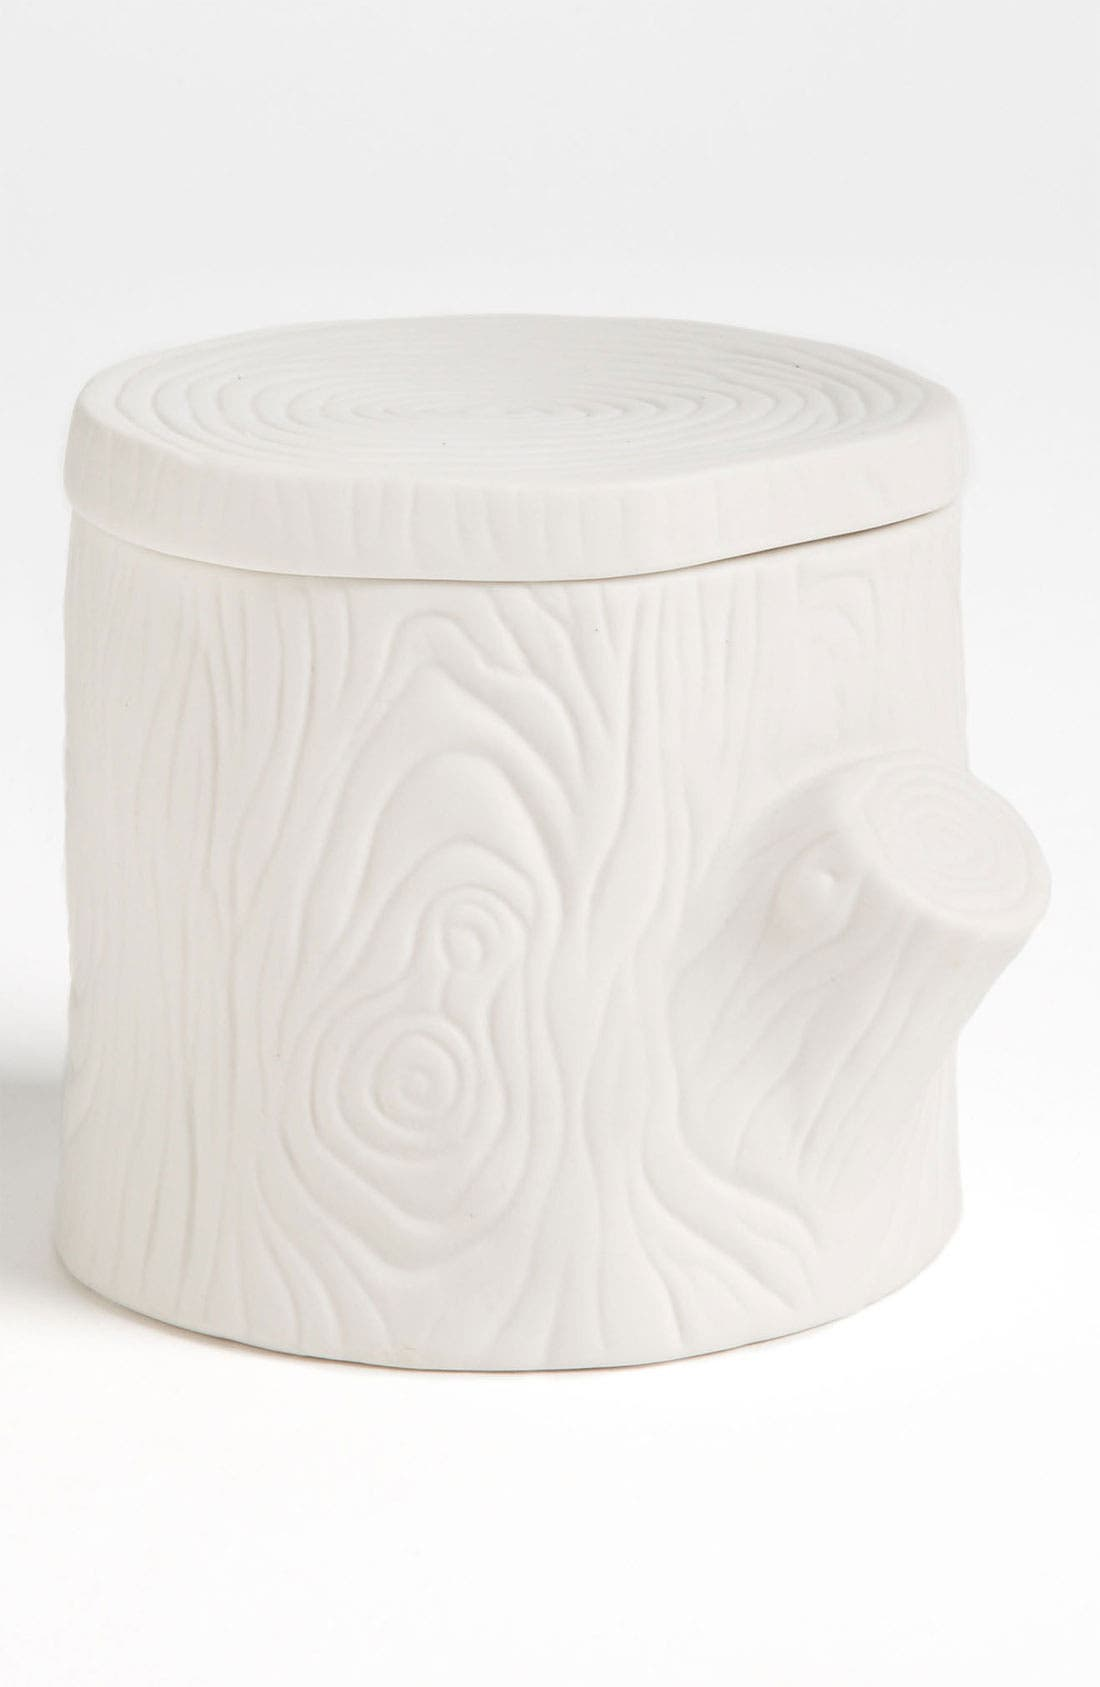 Main Image - 'Junk in The Trunk' Ceramic Box